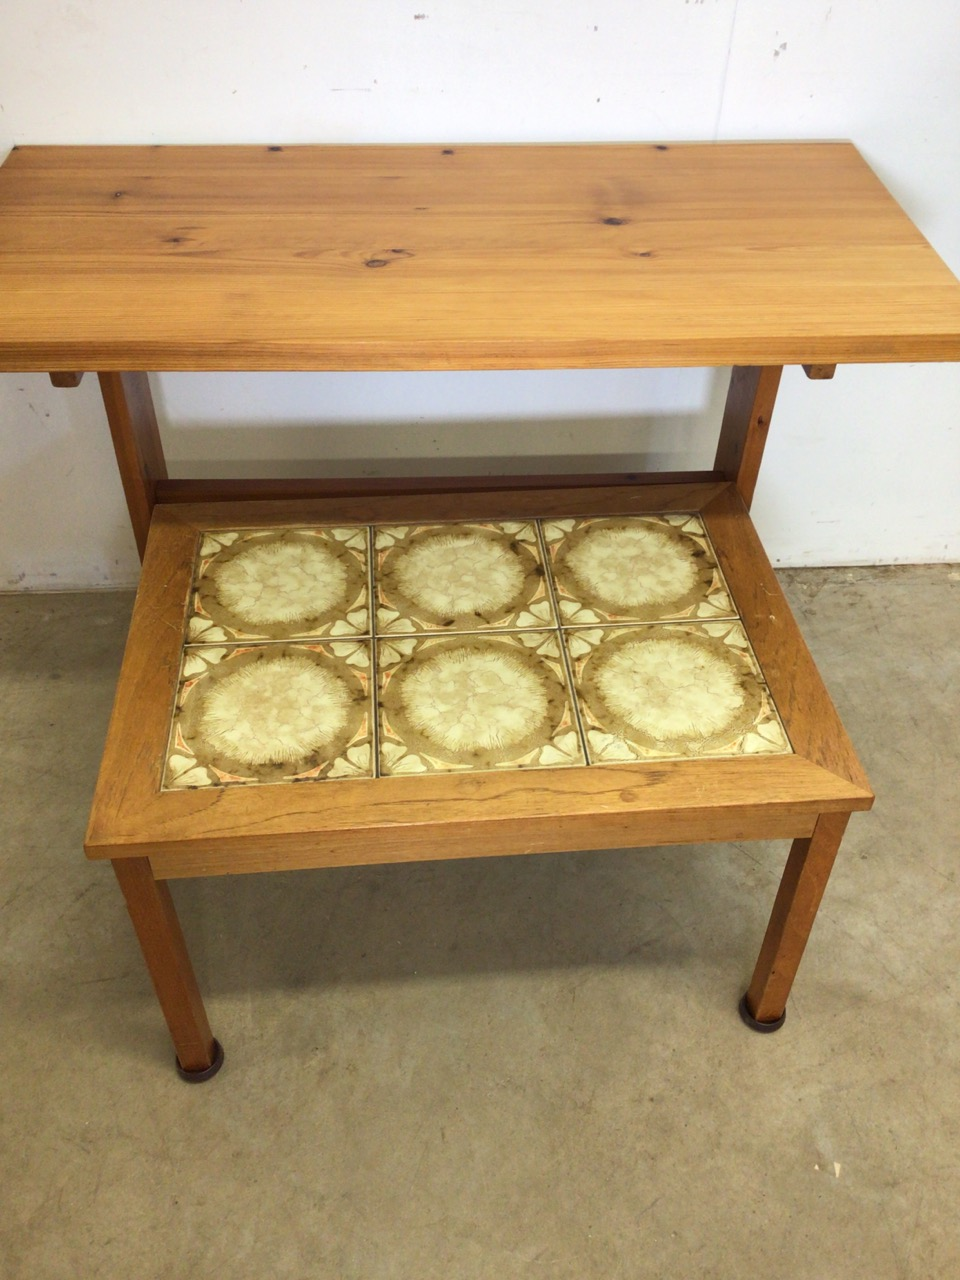 A pine table also with a tiled topped coffee table. W:107cm x D:52cm x H:74cm - Image 4 of 4